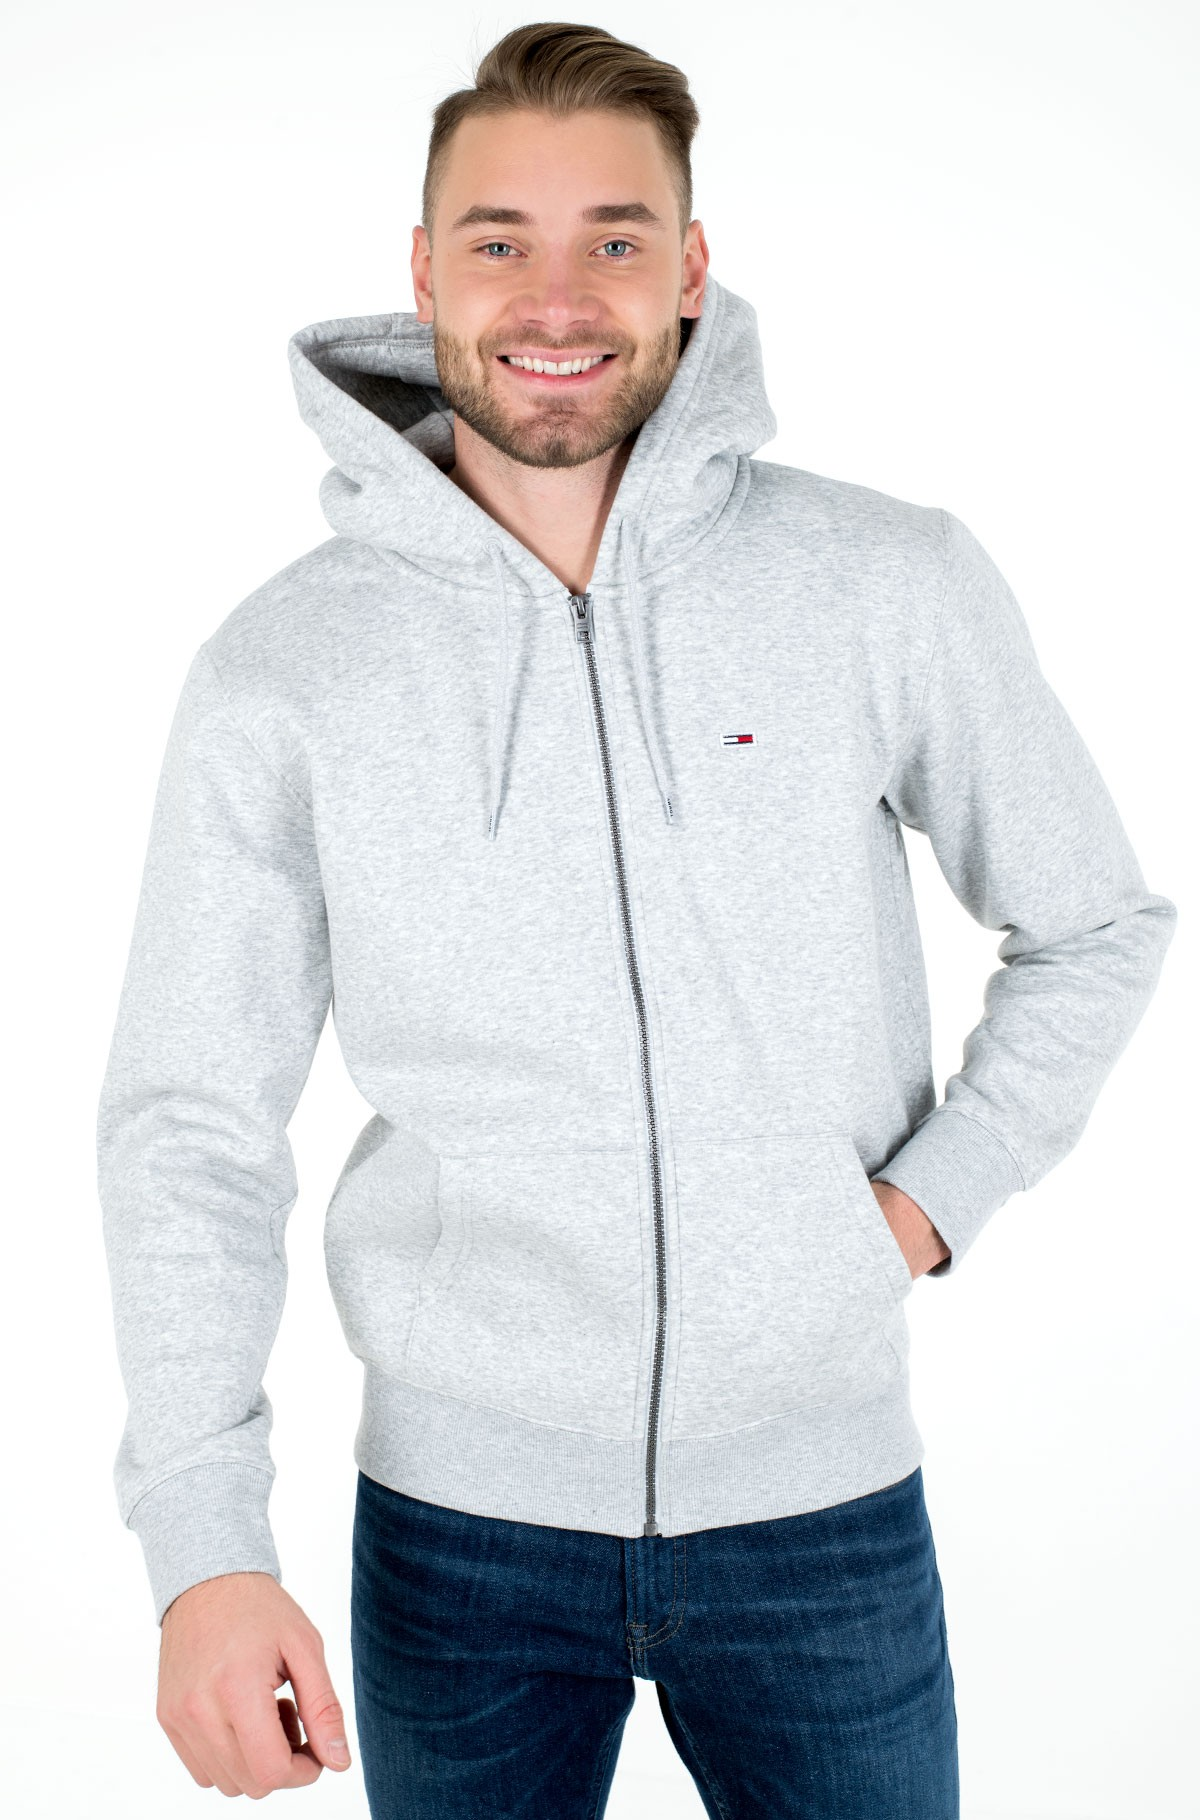 Dressipluus TJM REGULAR FLEECE ZIP HOODIE-full-1